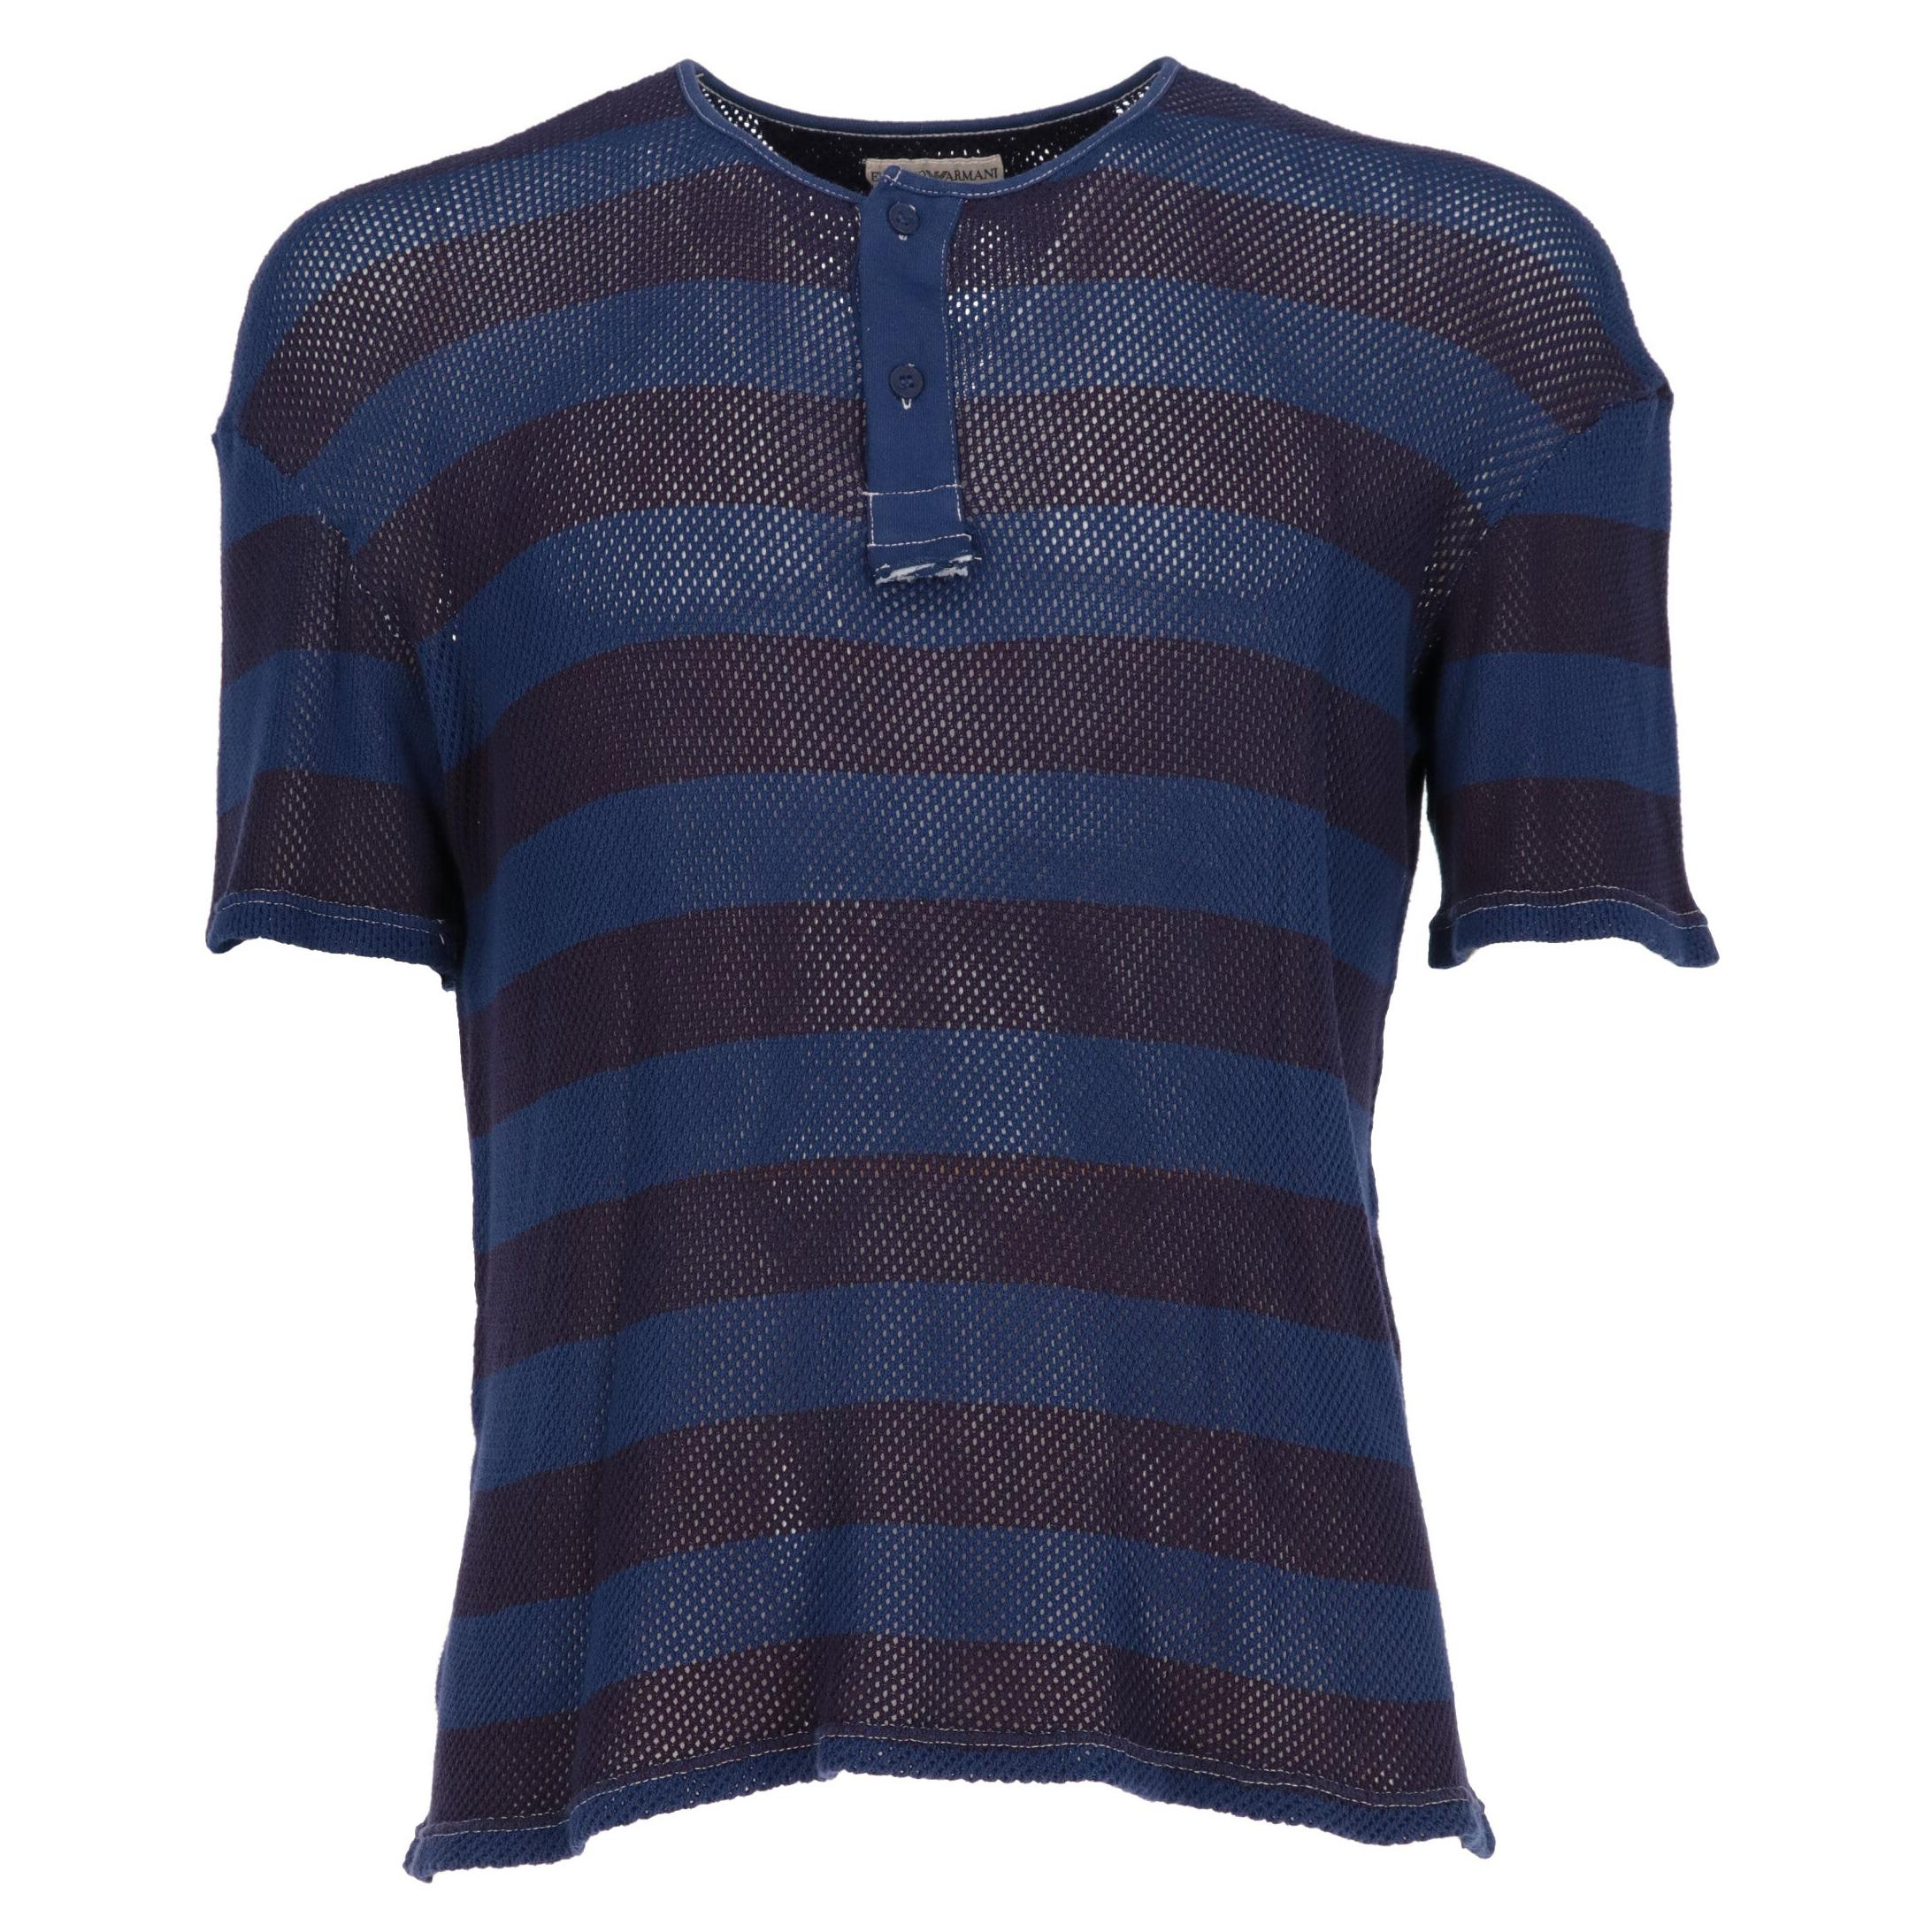 1990s Emporio Armani Knitted T-shirt